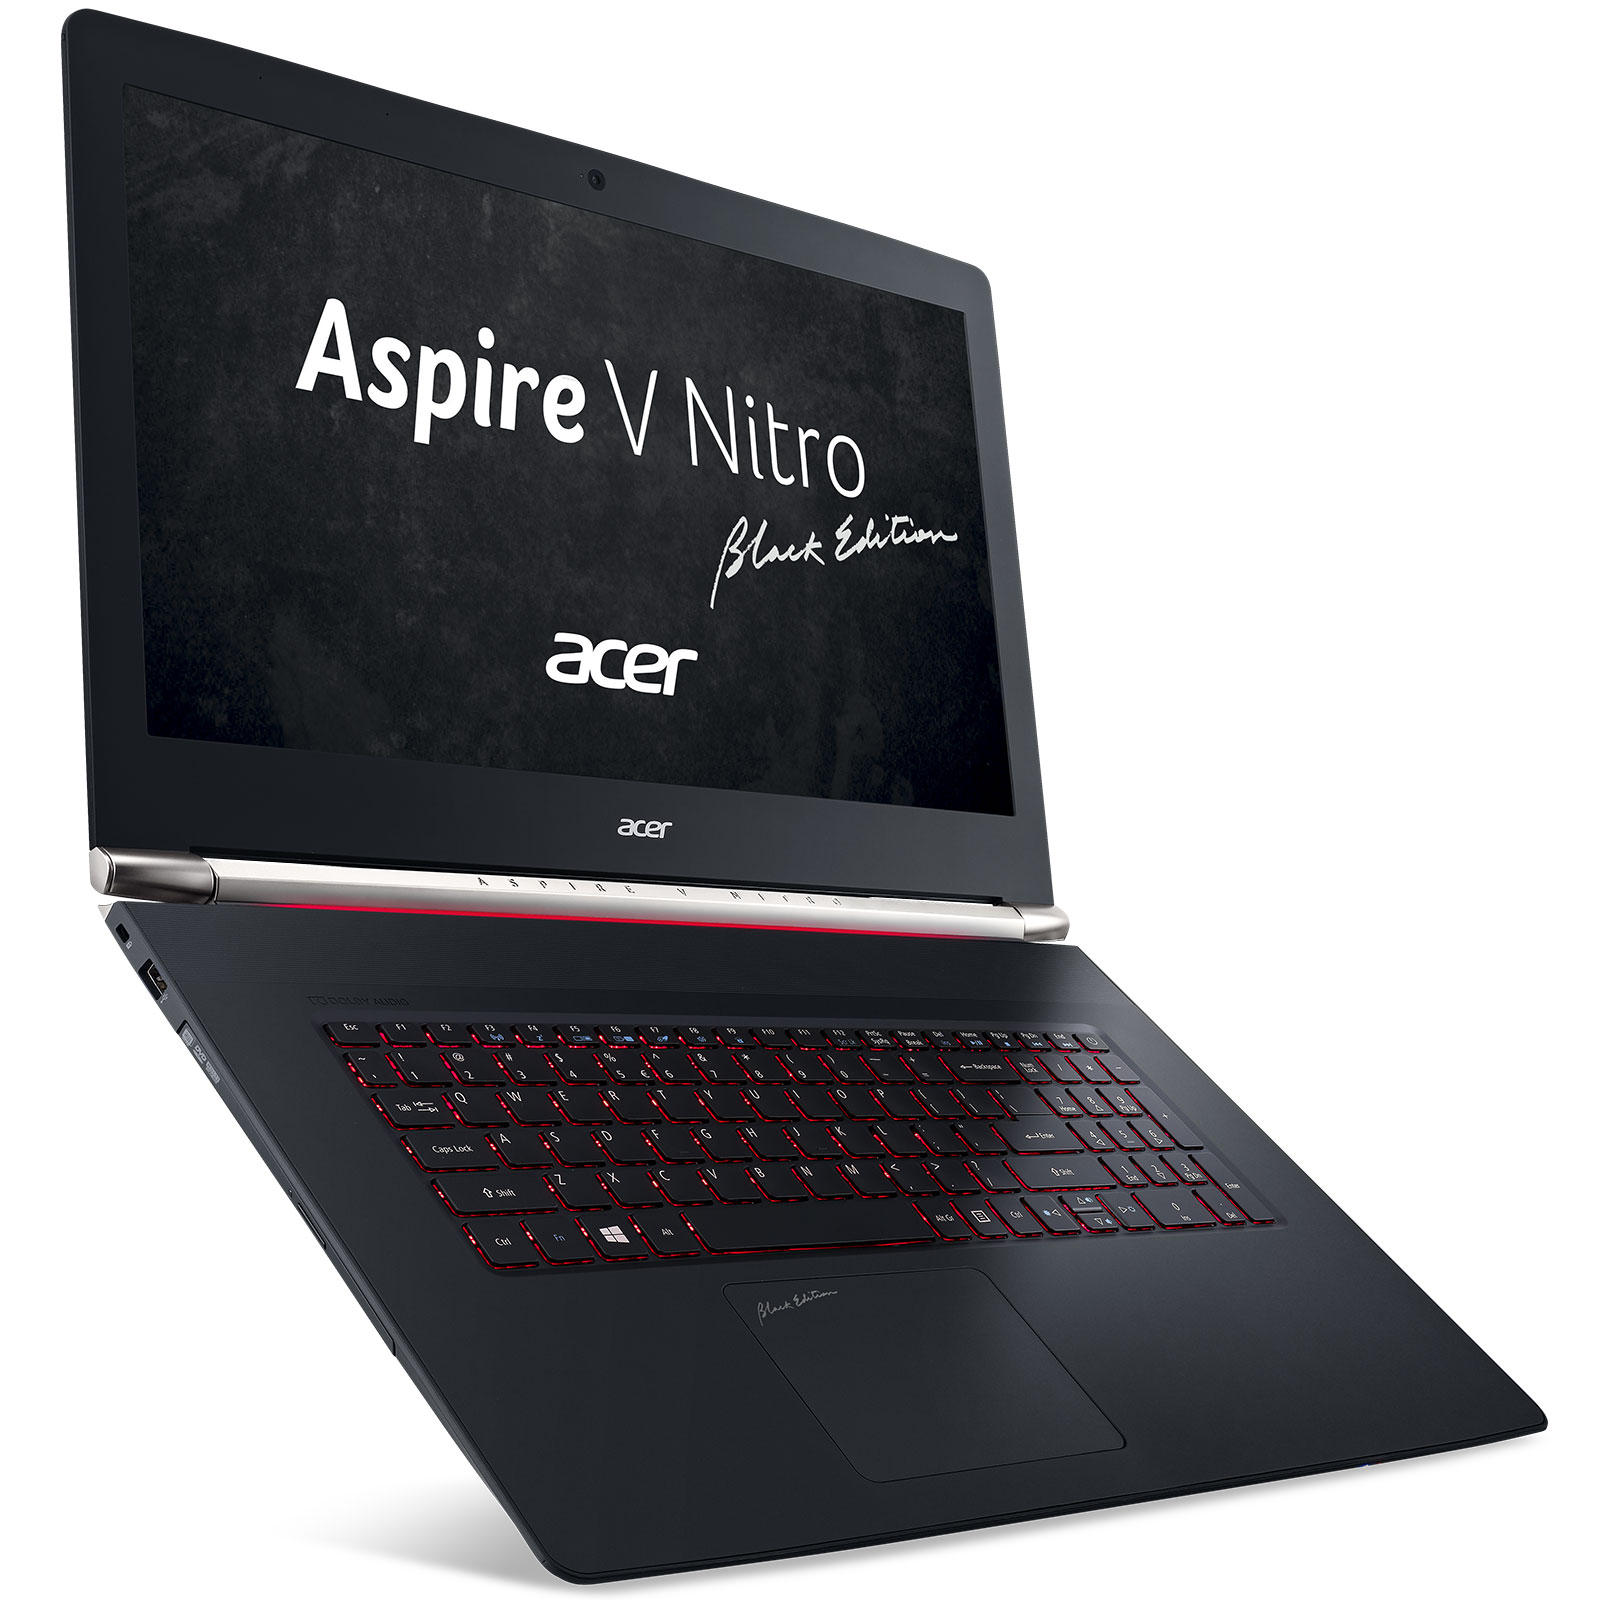 "PC portable Acer Aspire V Nitro VN7-792G-78CC Black Edition Intel Core i7-6700HQ 8 Go SSD 128 Go + HDD 1 To 17.3"" LED Full HD NVIDIA GeForce GTX 960M Wi-Fi AC/Bluetooth Webcam Windows 10 Famille 64 bits"